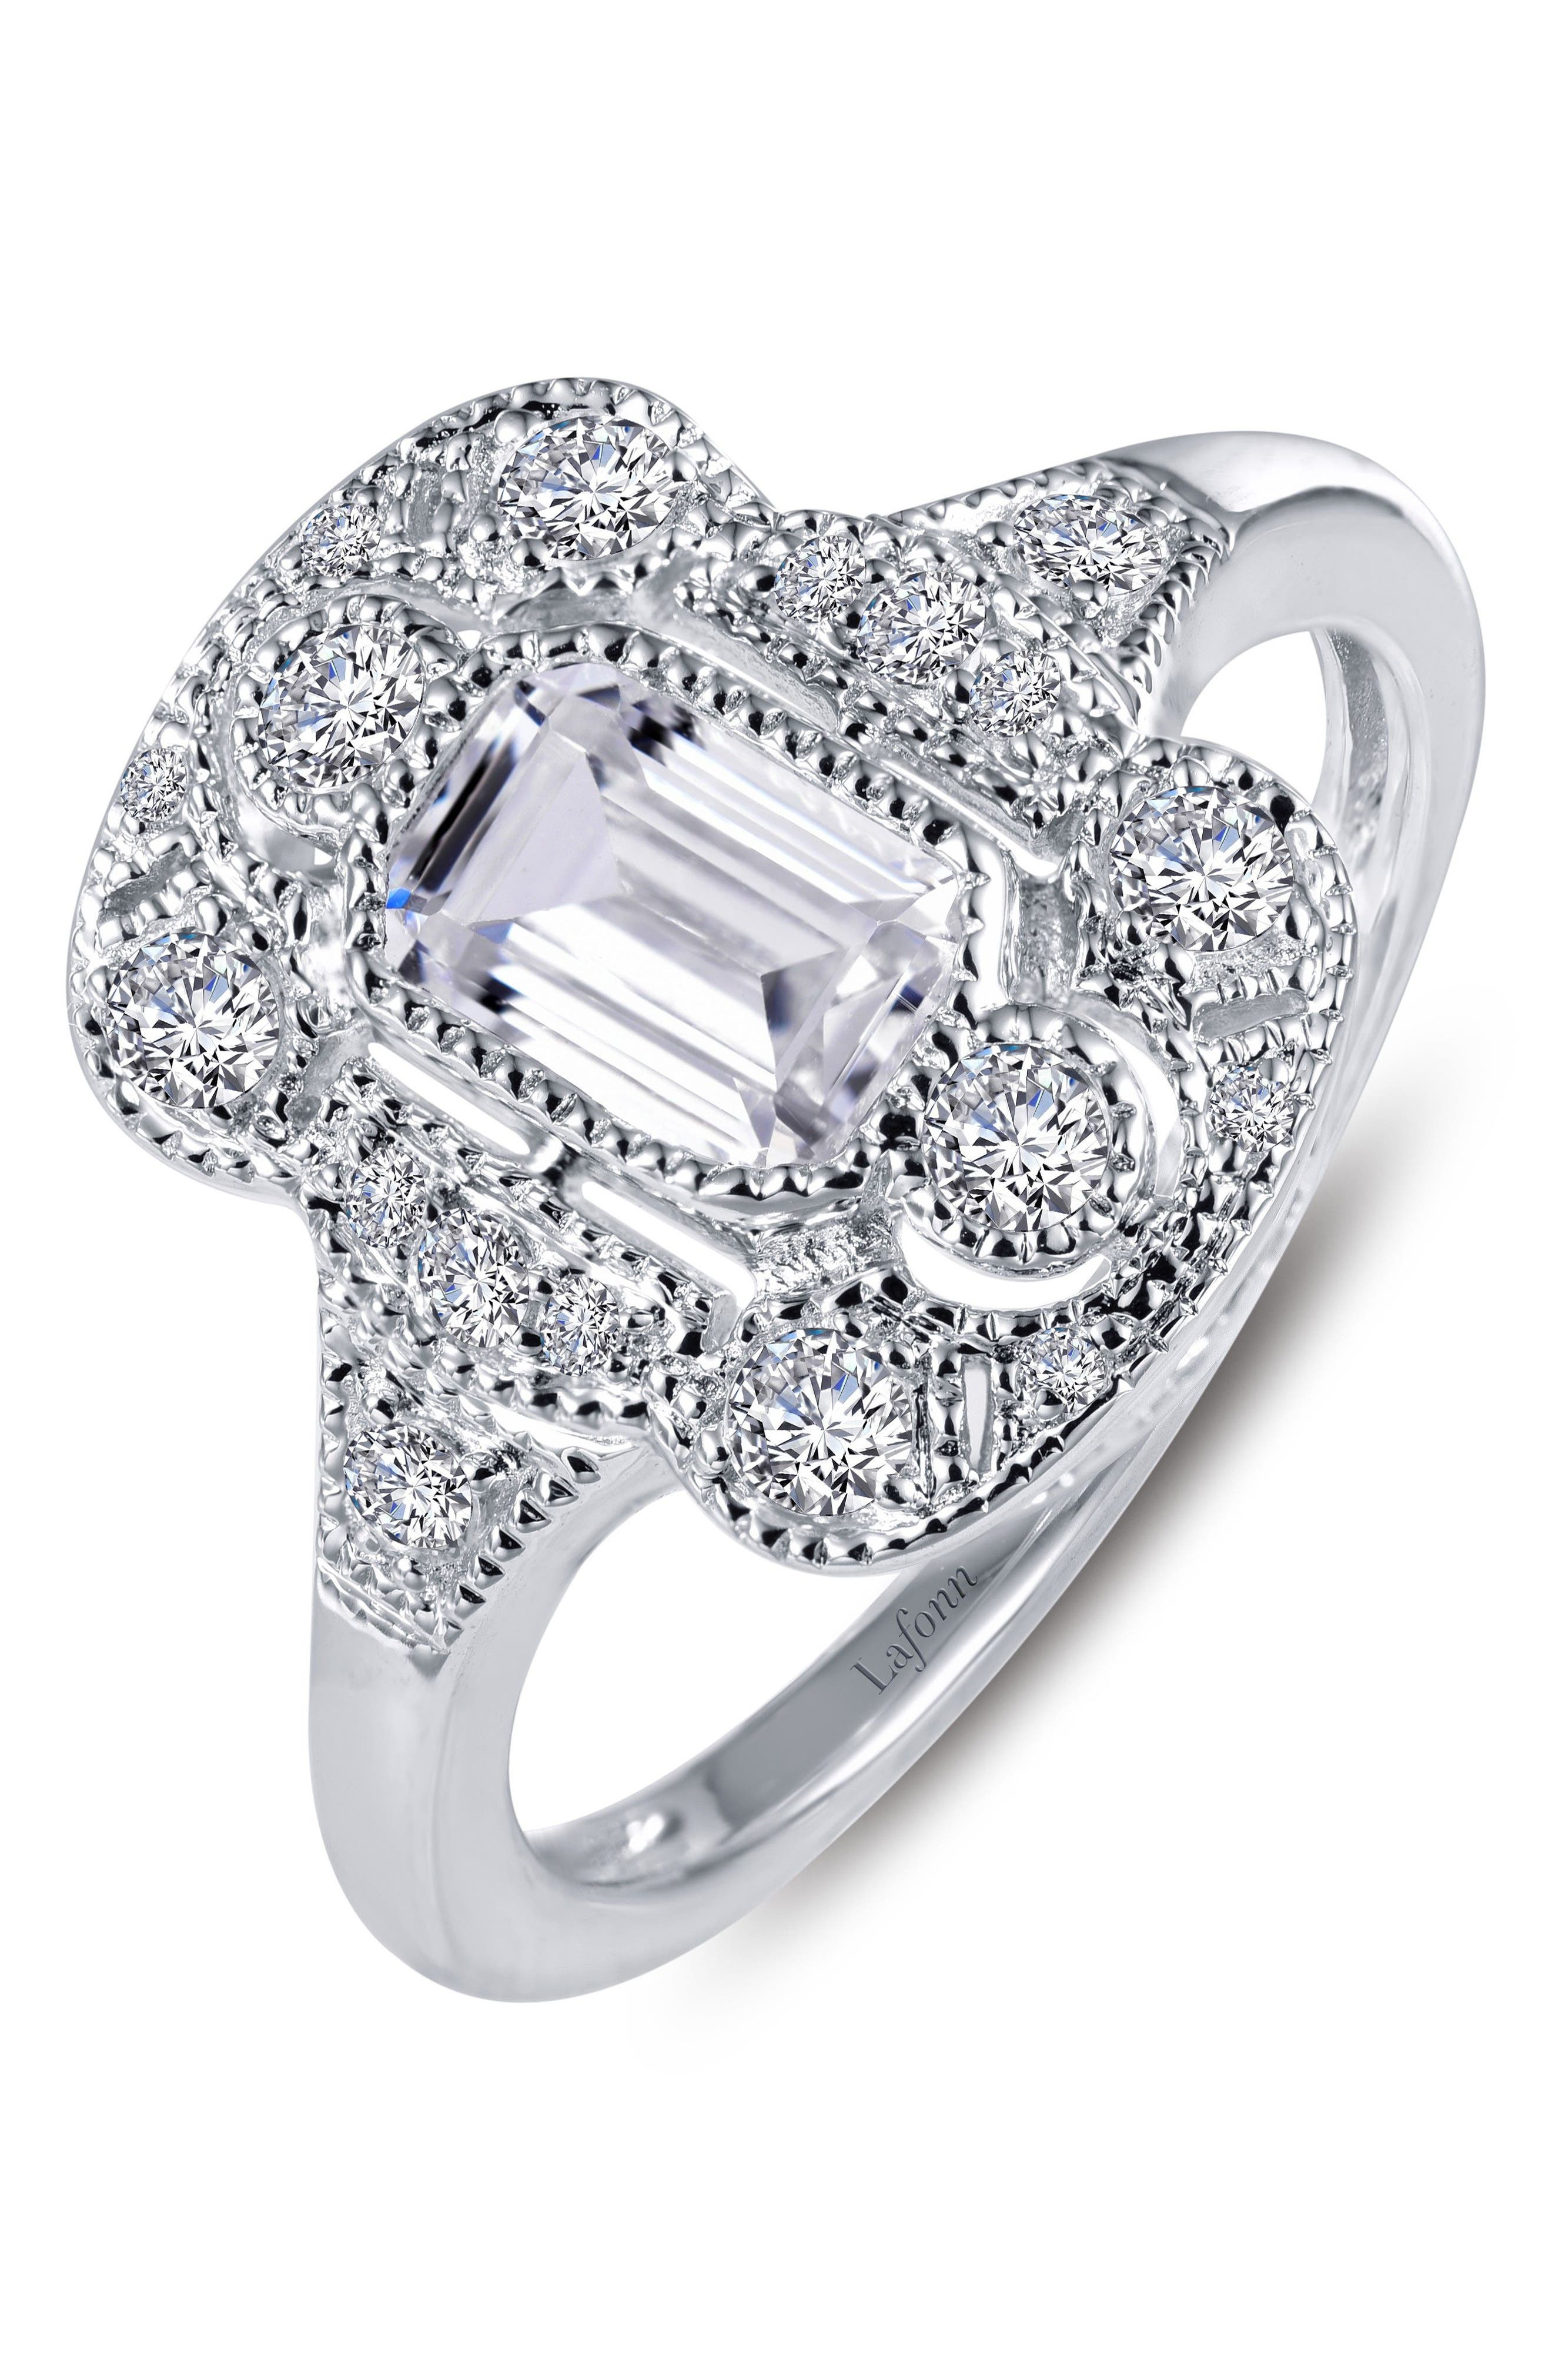 Simulated Diamond Heritage Ring,                         Main,                         color, Silver/ Clear